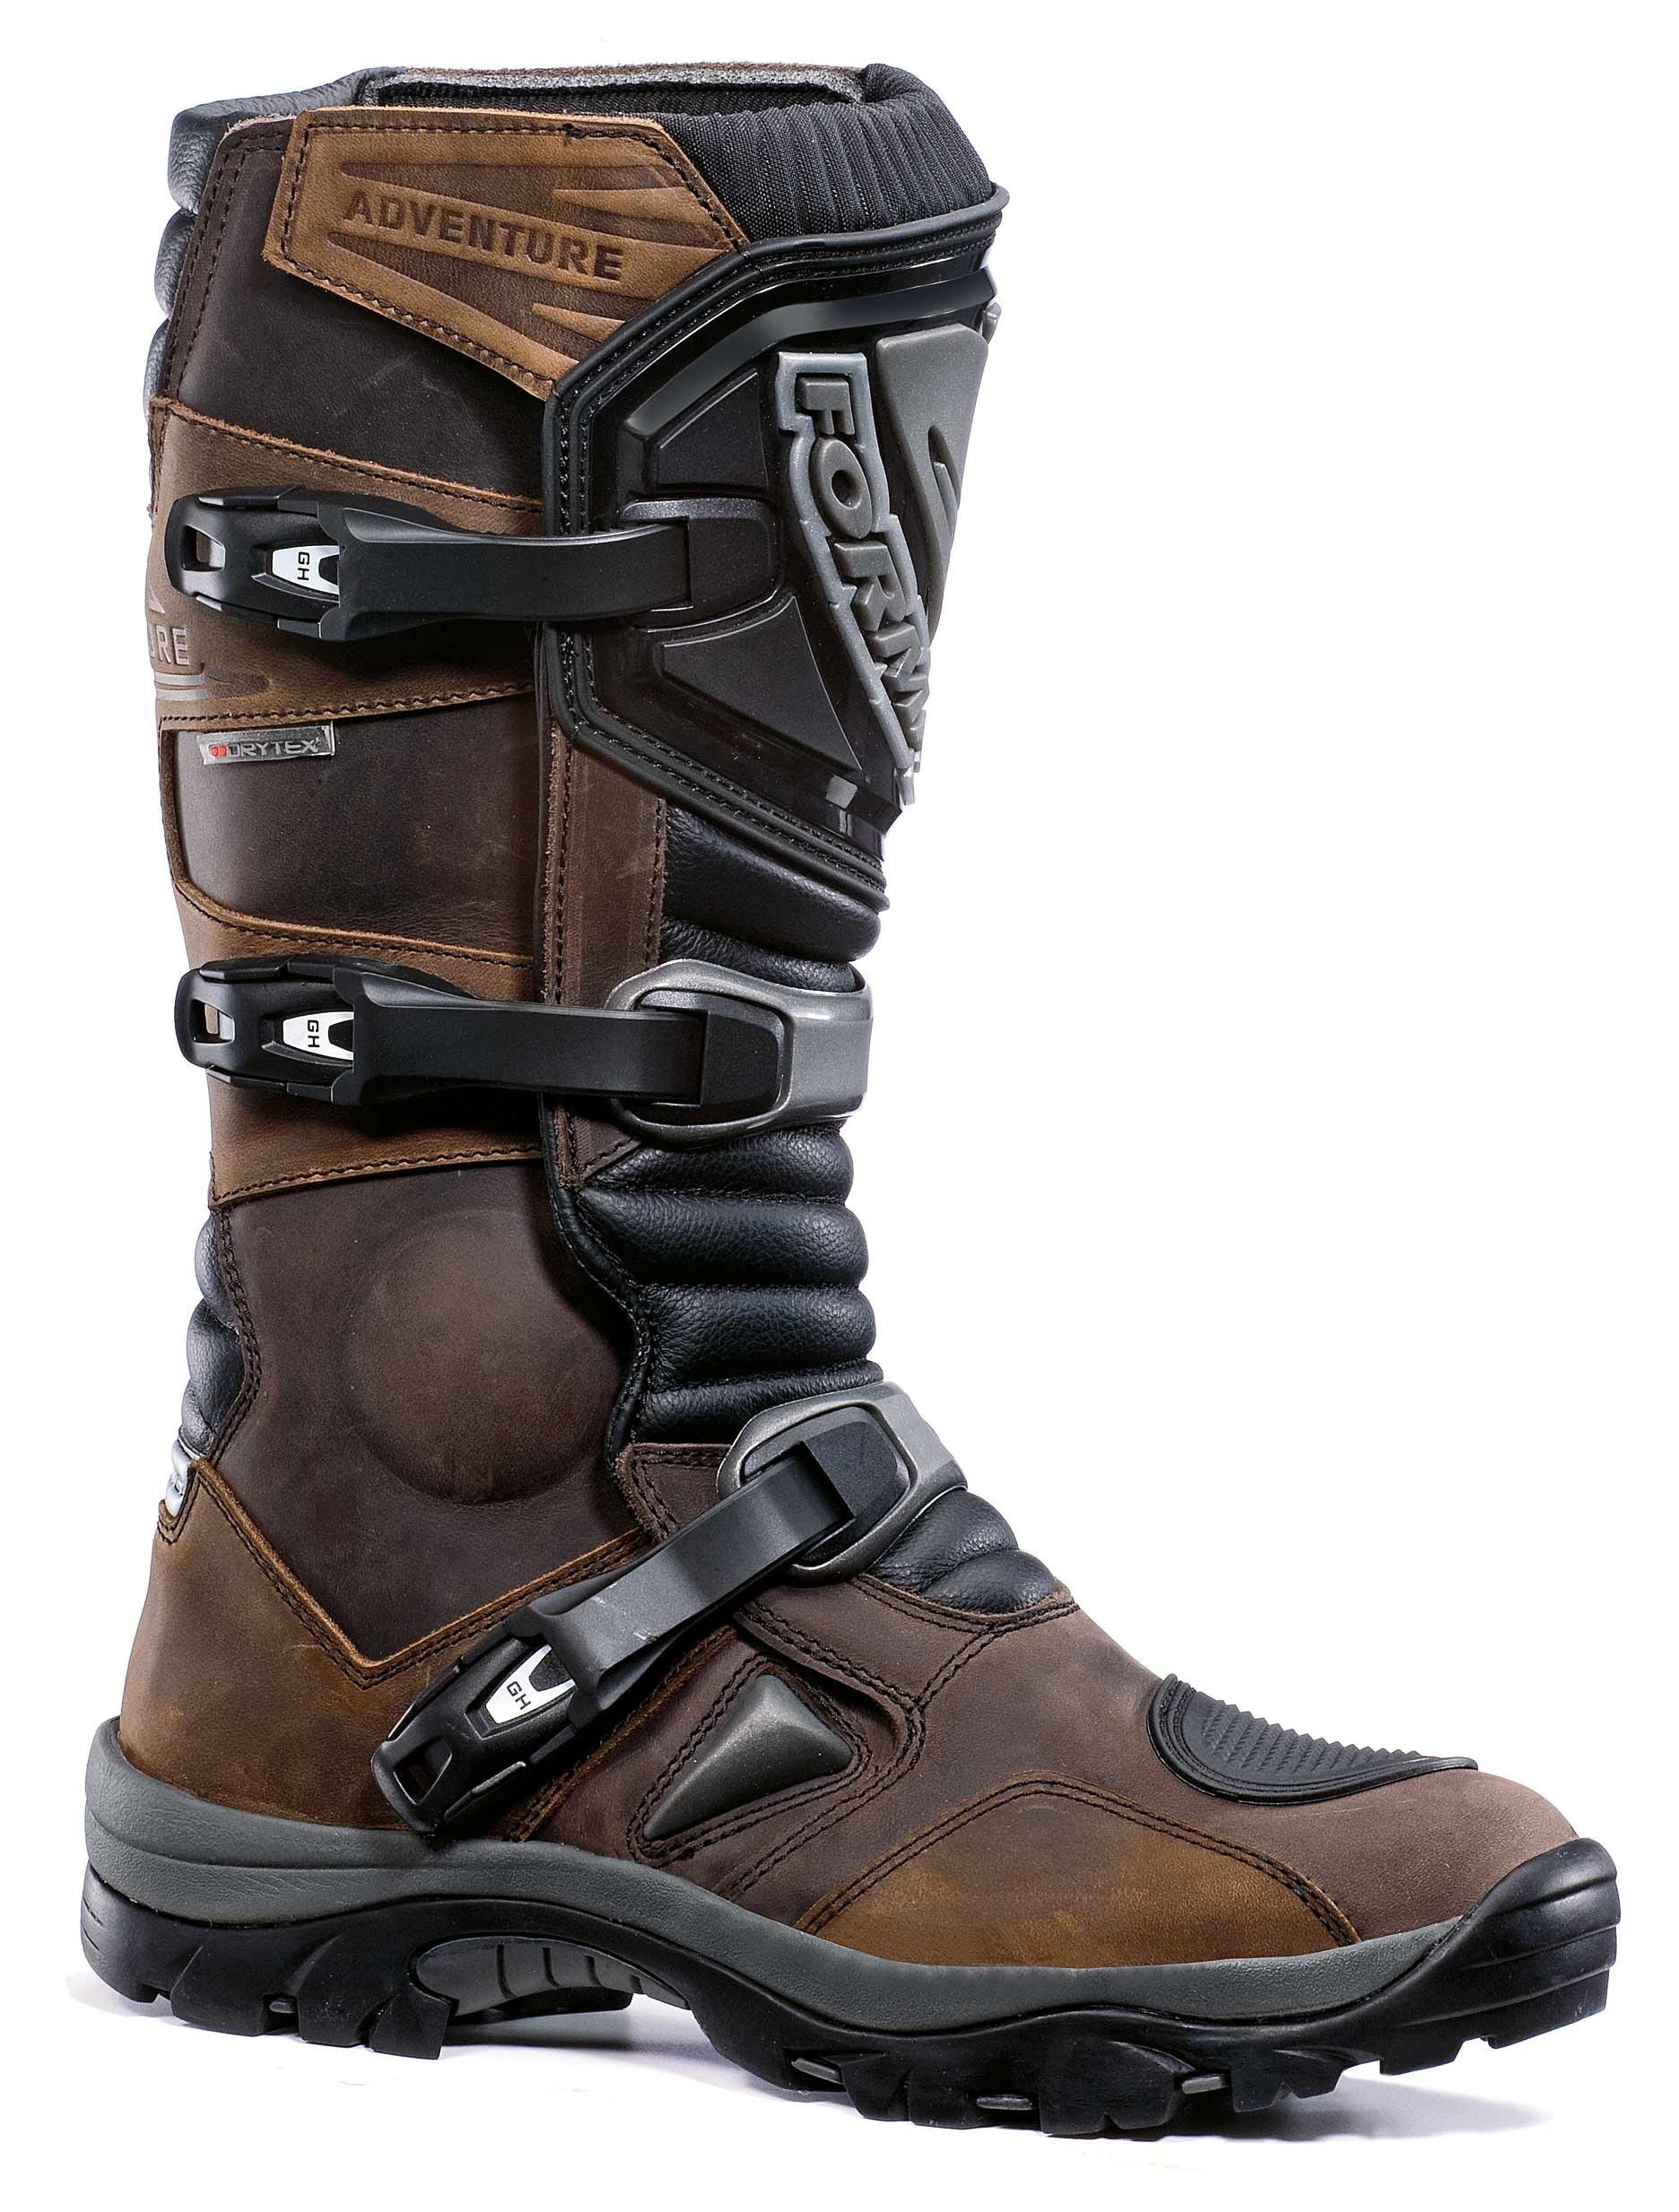 Cool motorcycle adventure boots | Adventure boots, Brown